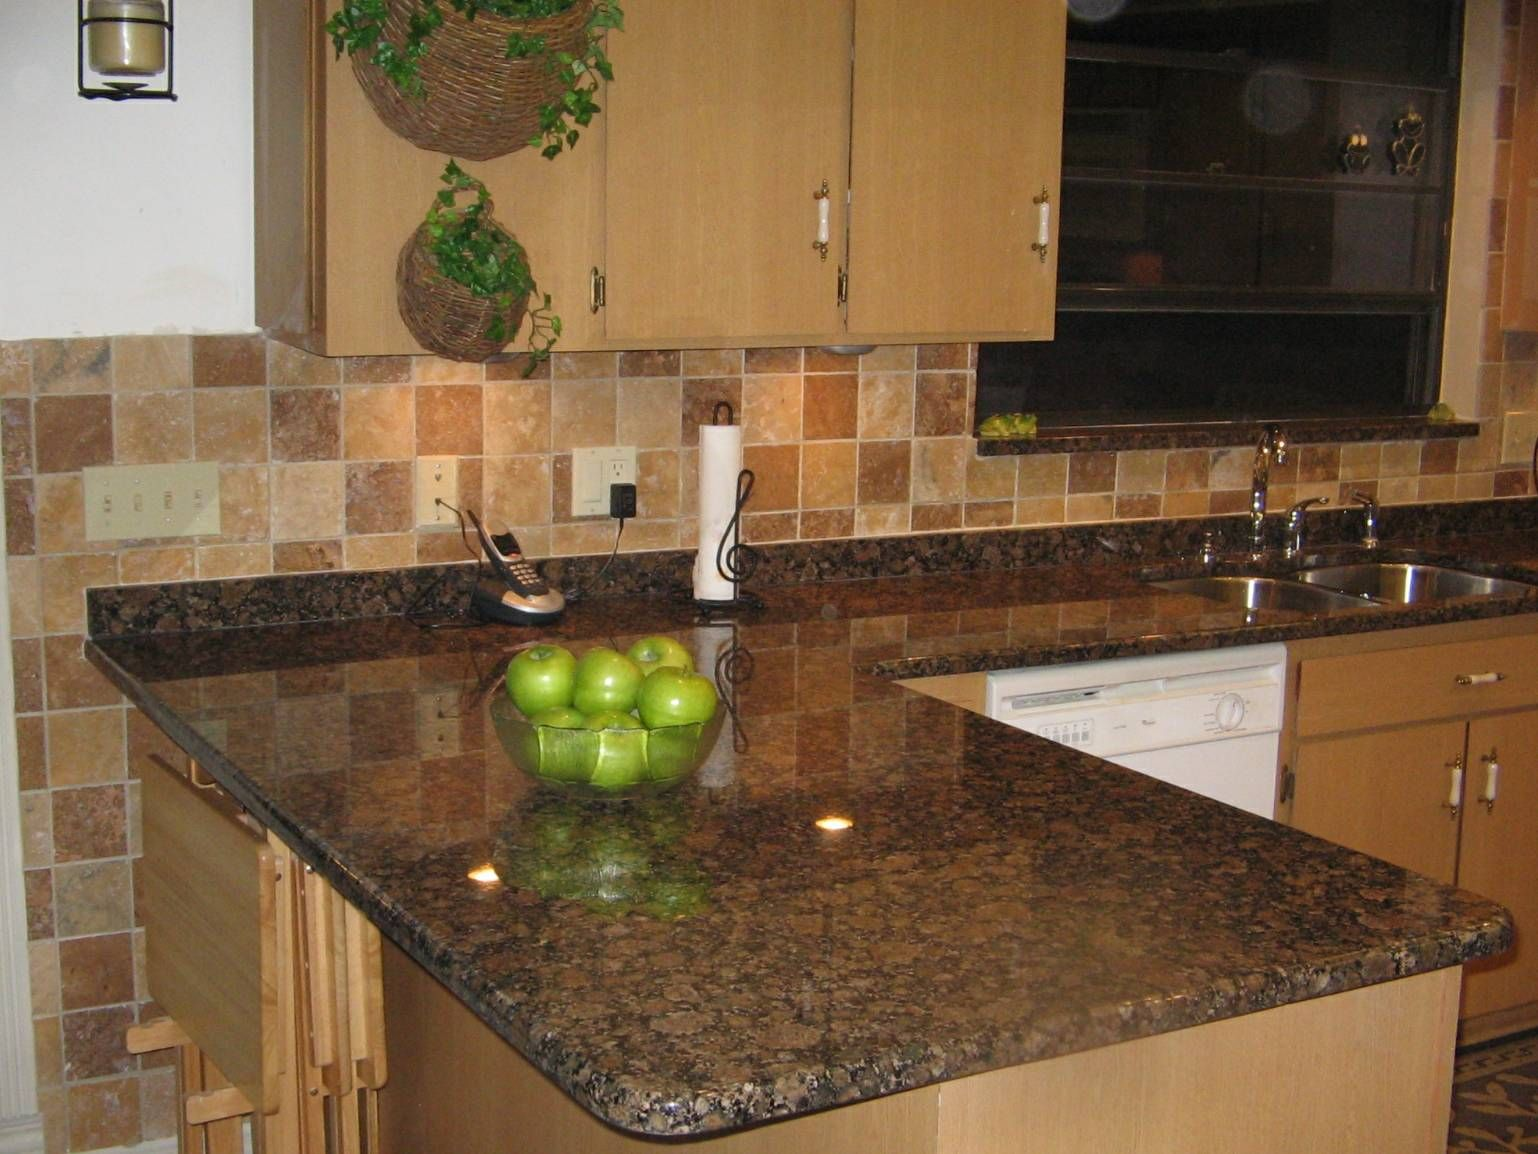 Matching Backsplash To Countertop Love This Backsplash And It Matches My Granite Color I